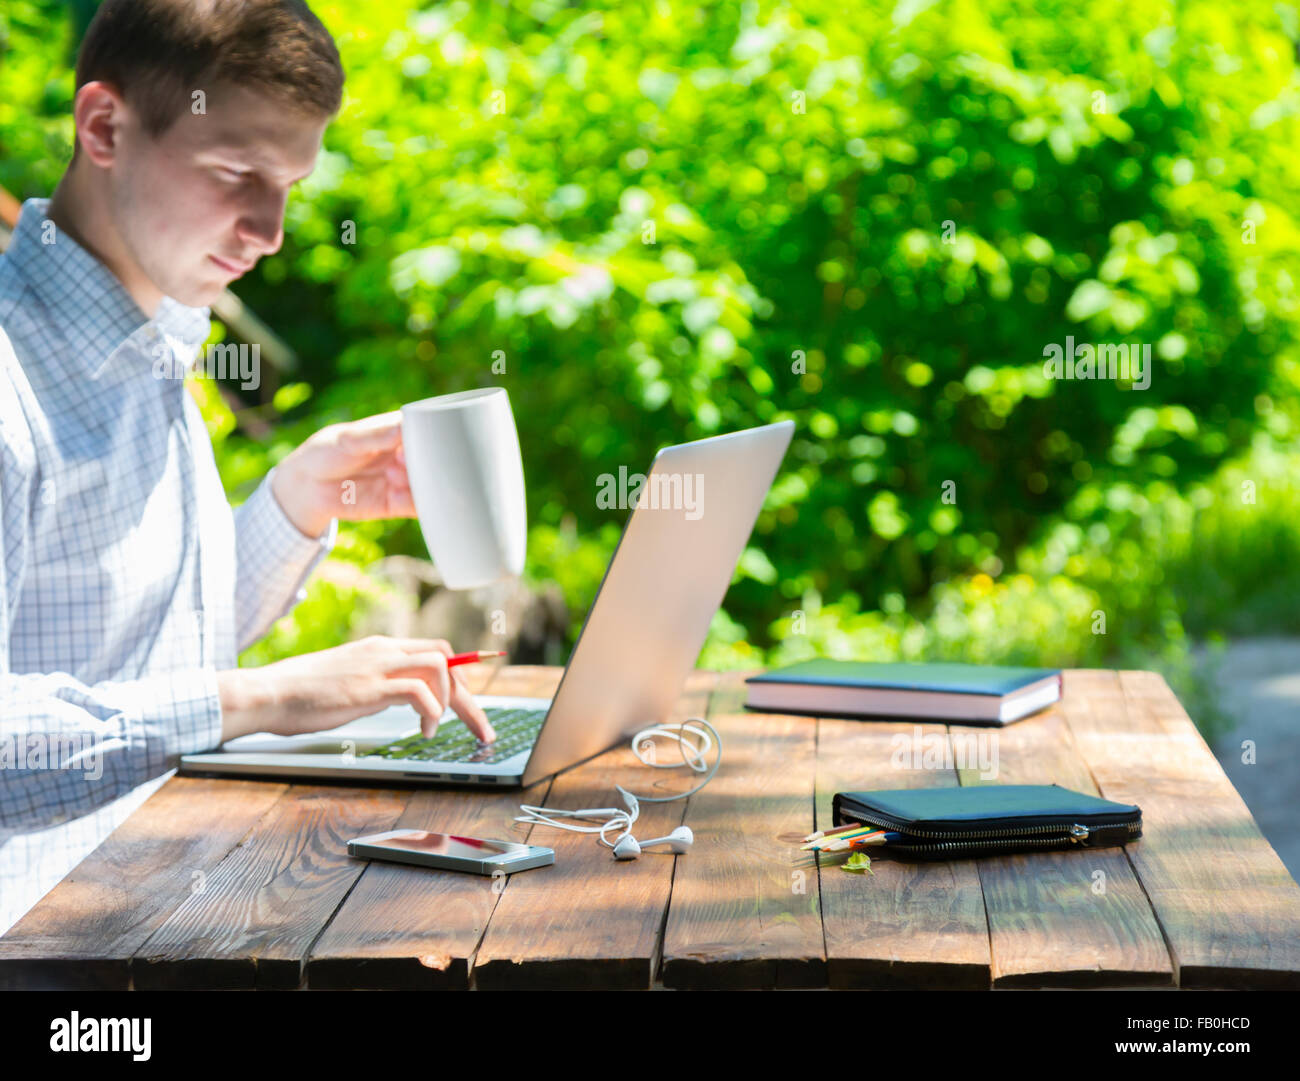 Hardworking man inspired with nature - Stock Image